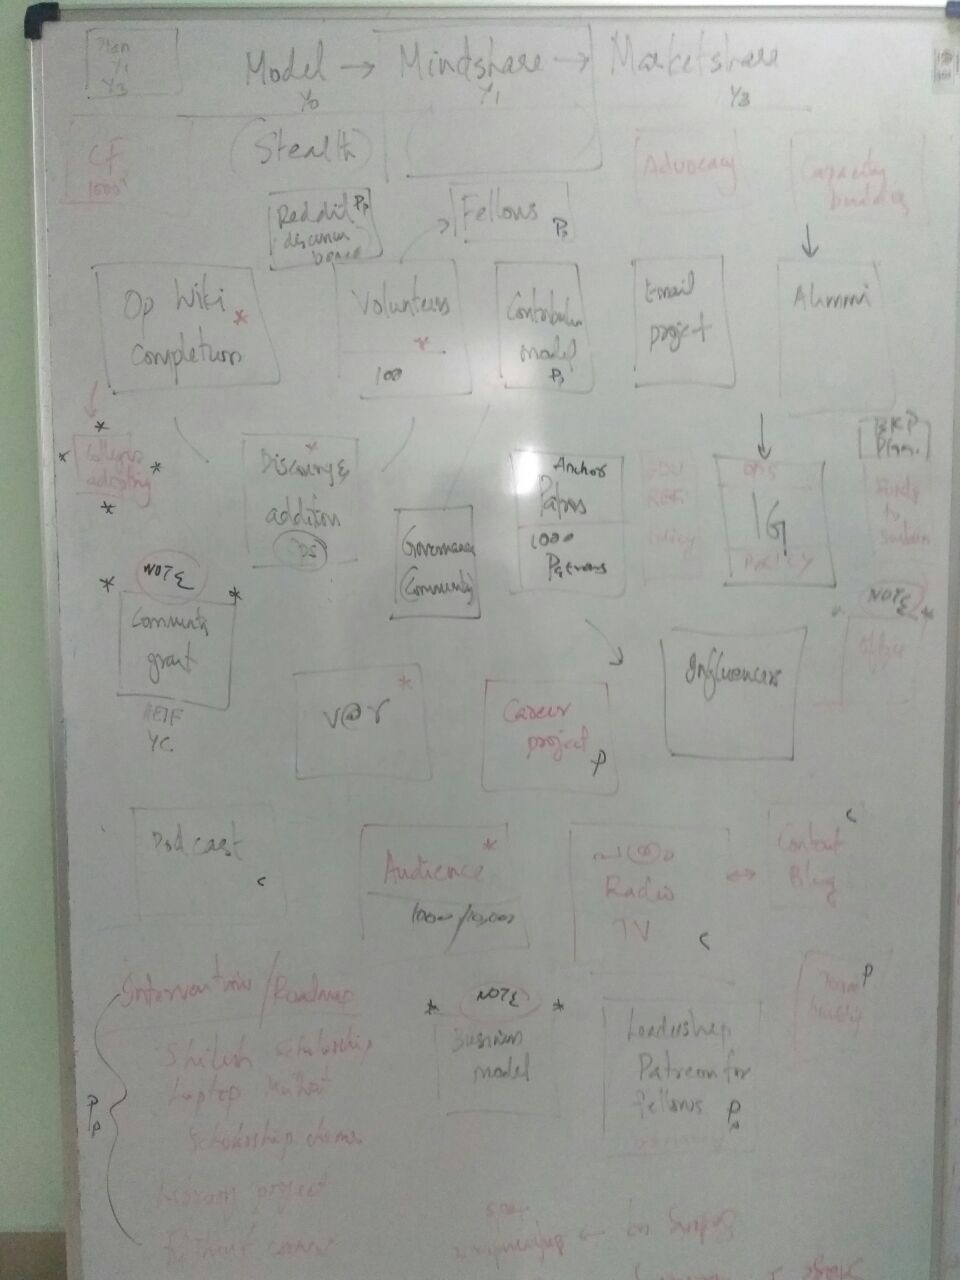 On a large whiteboard we started writing